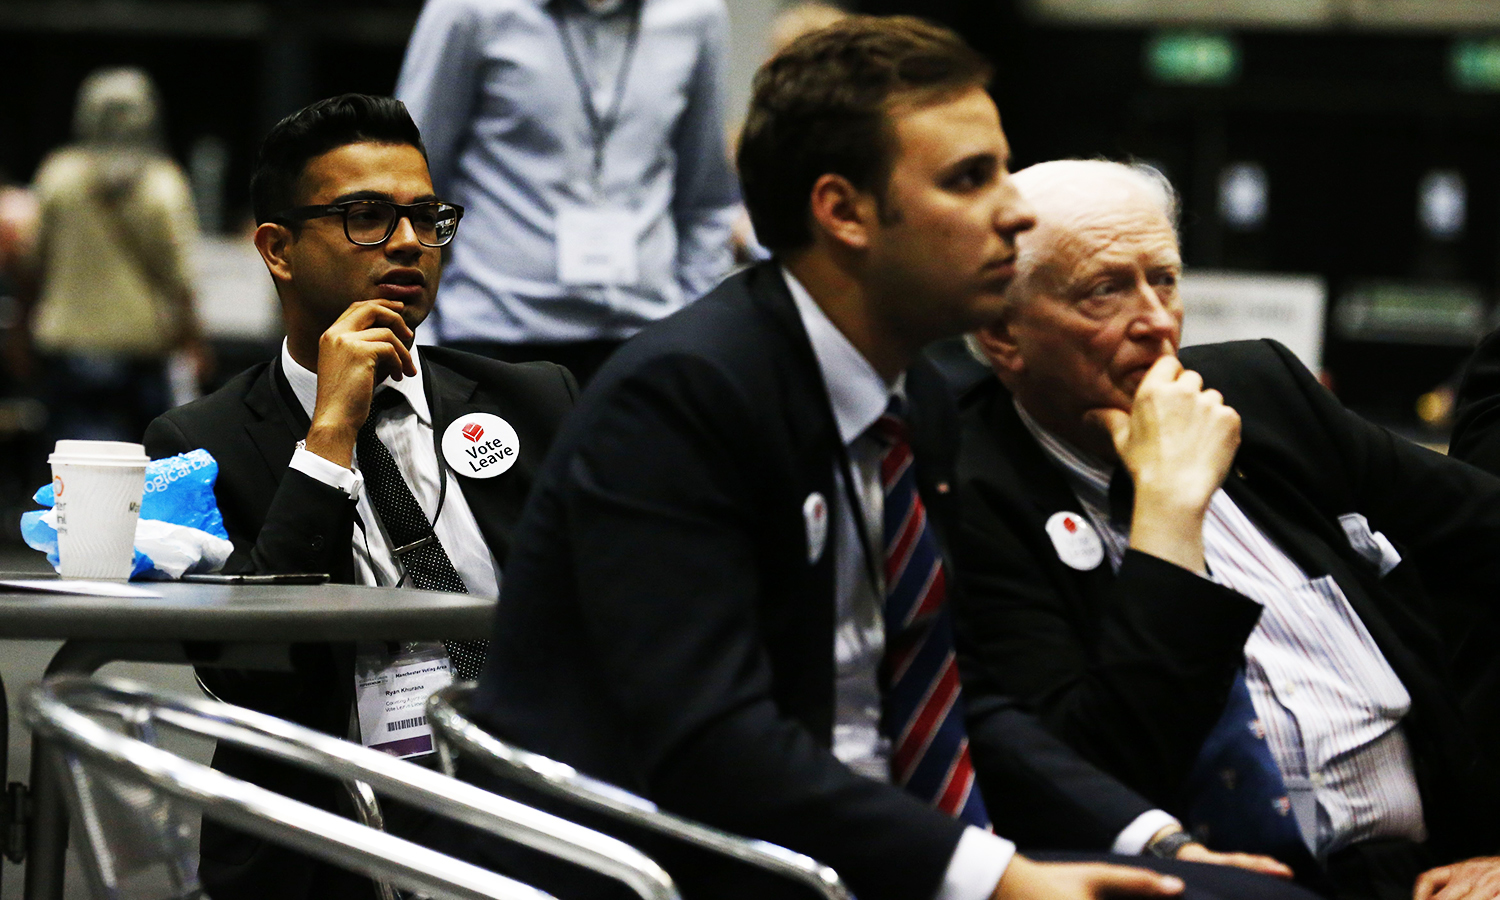 """Pro-Leave campaigners watch TV screens as results begin to come in at the Manchester Central Convention Complex where the EU referendum vote count is taking place in Manchester, north west England on June 23, 2016. First results from Britain's historic EU referendum suggest an extremely tight race, with swathes of northern England backing """"Leave"""" but parts of London and Scotland coming out strongly for """"Remain"""". / AFP PHOTO / Lindsey PARNABY"""